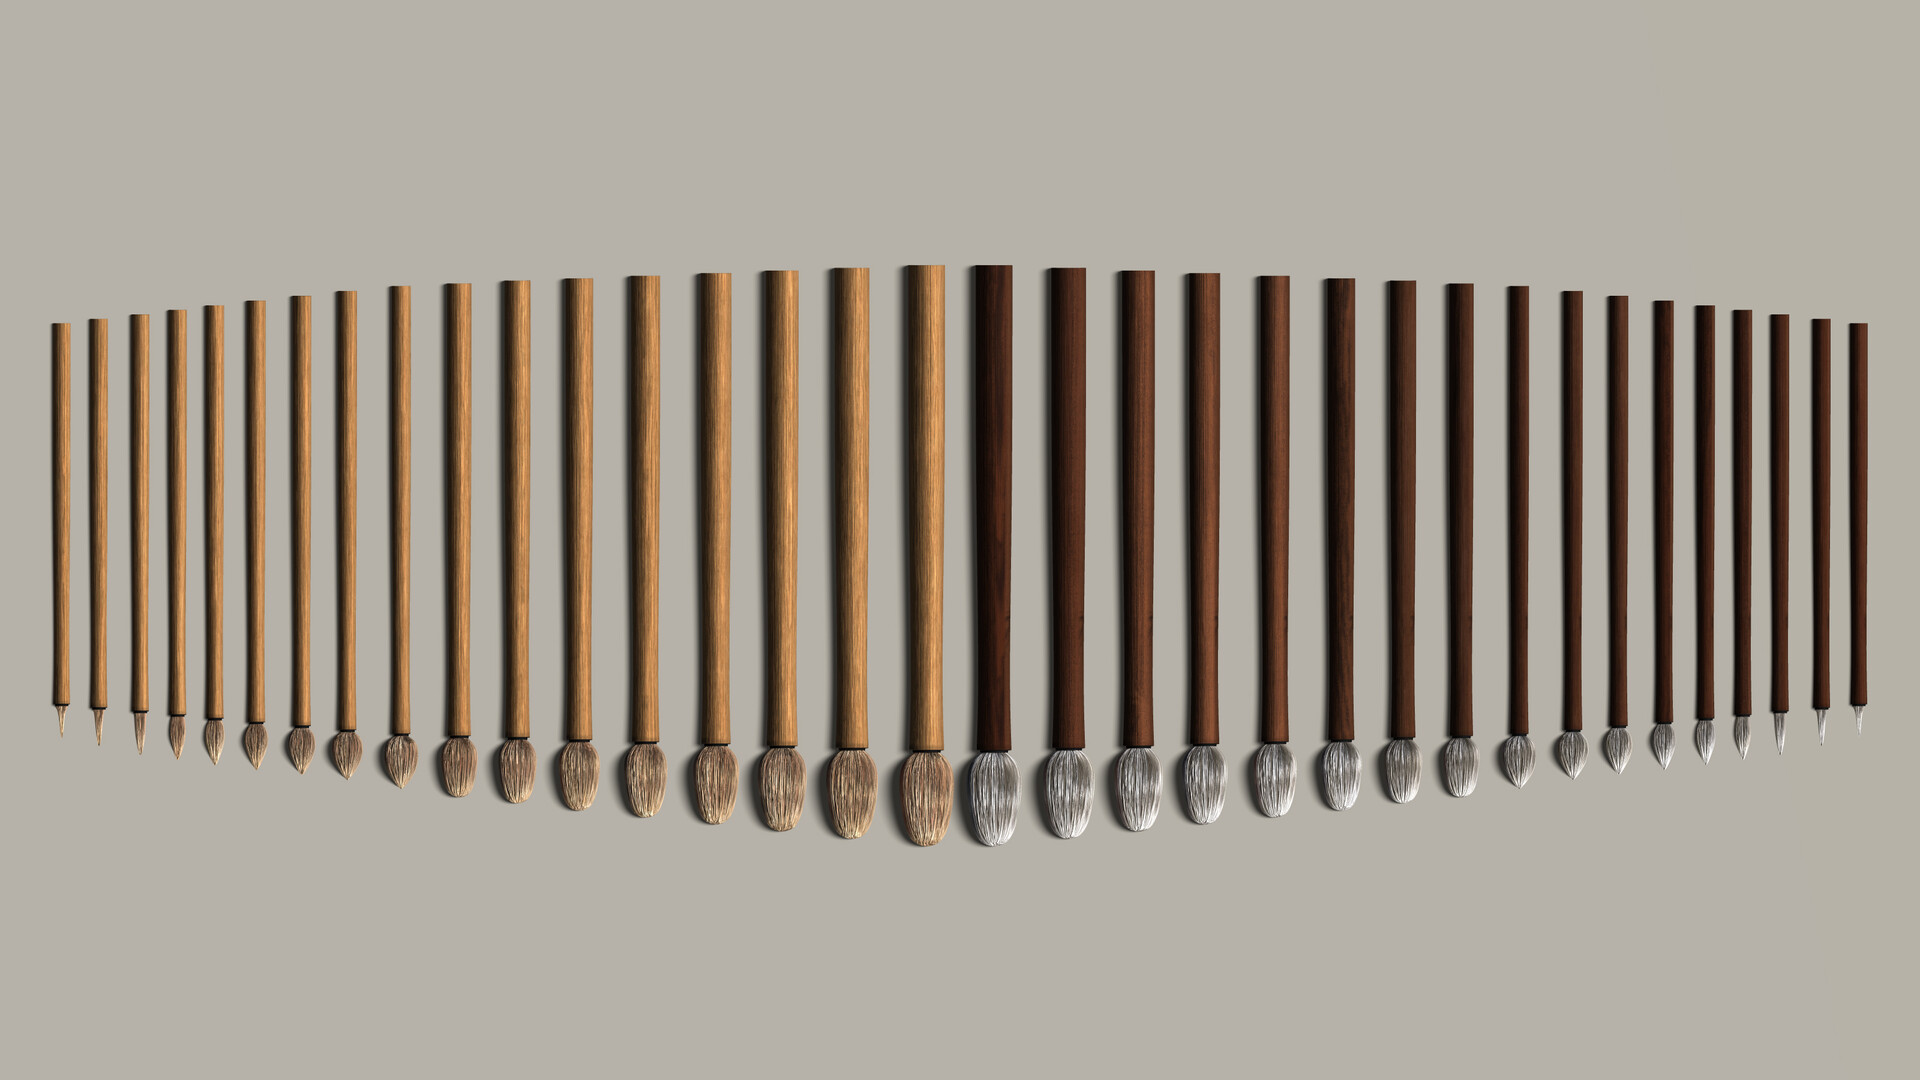 Mary williams manybrushes mdtip 0002